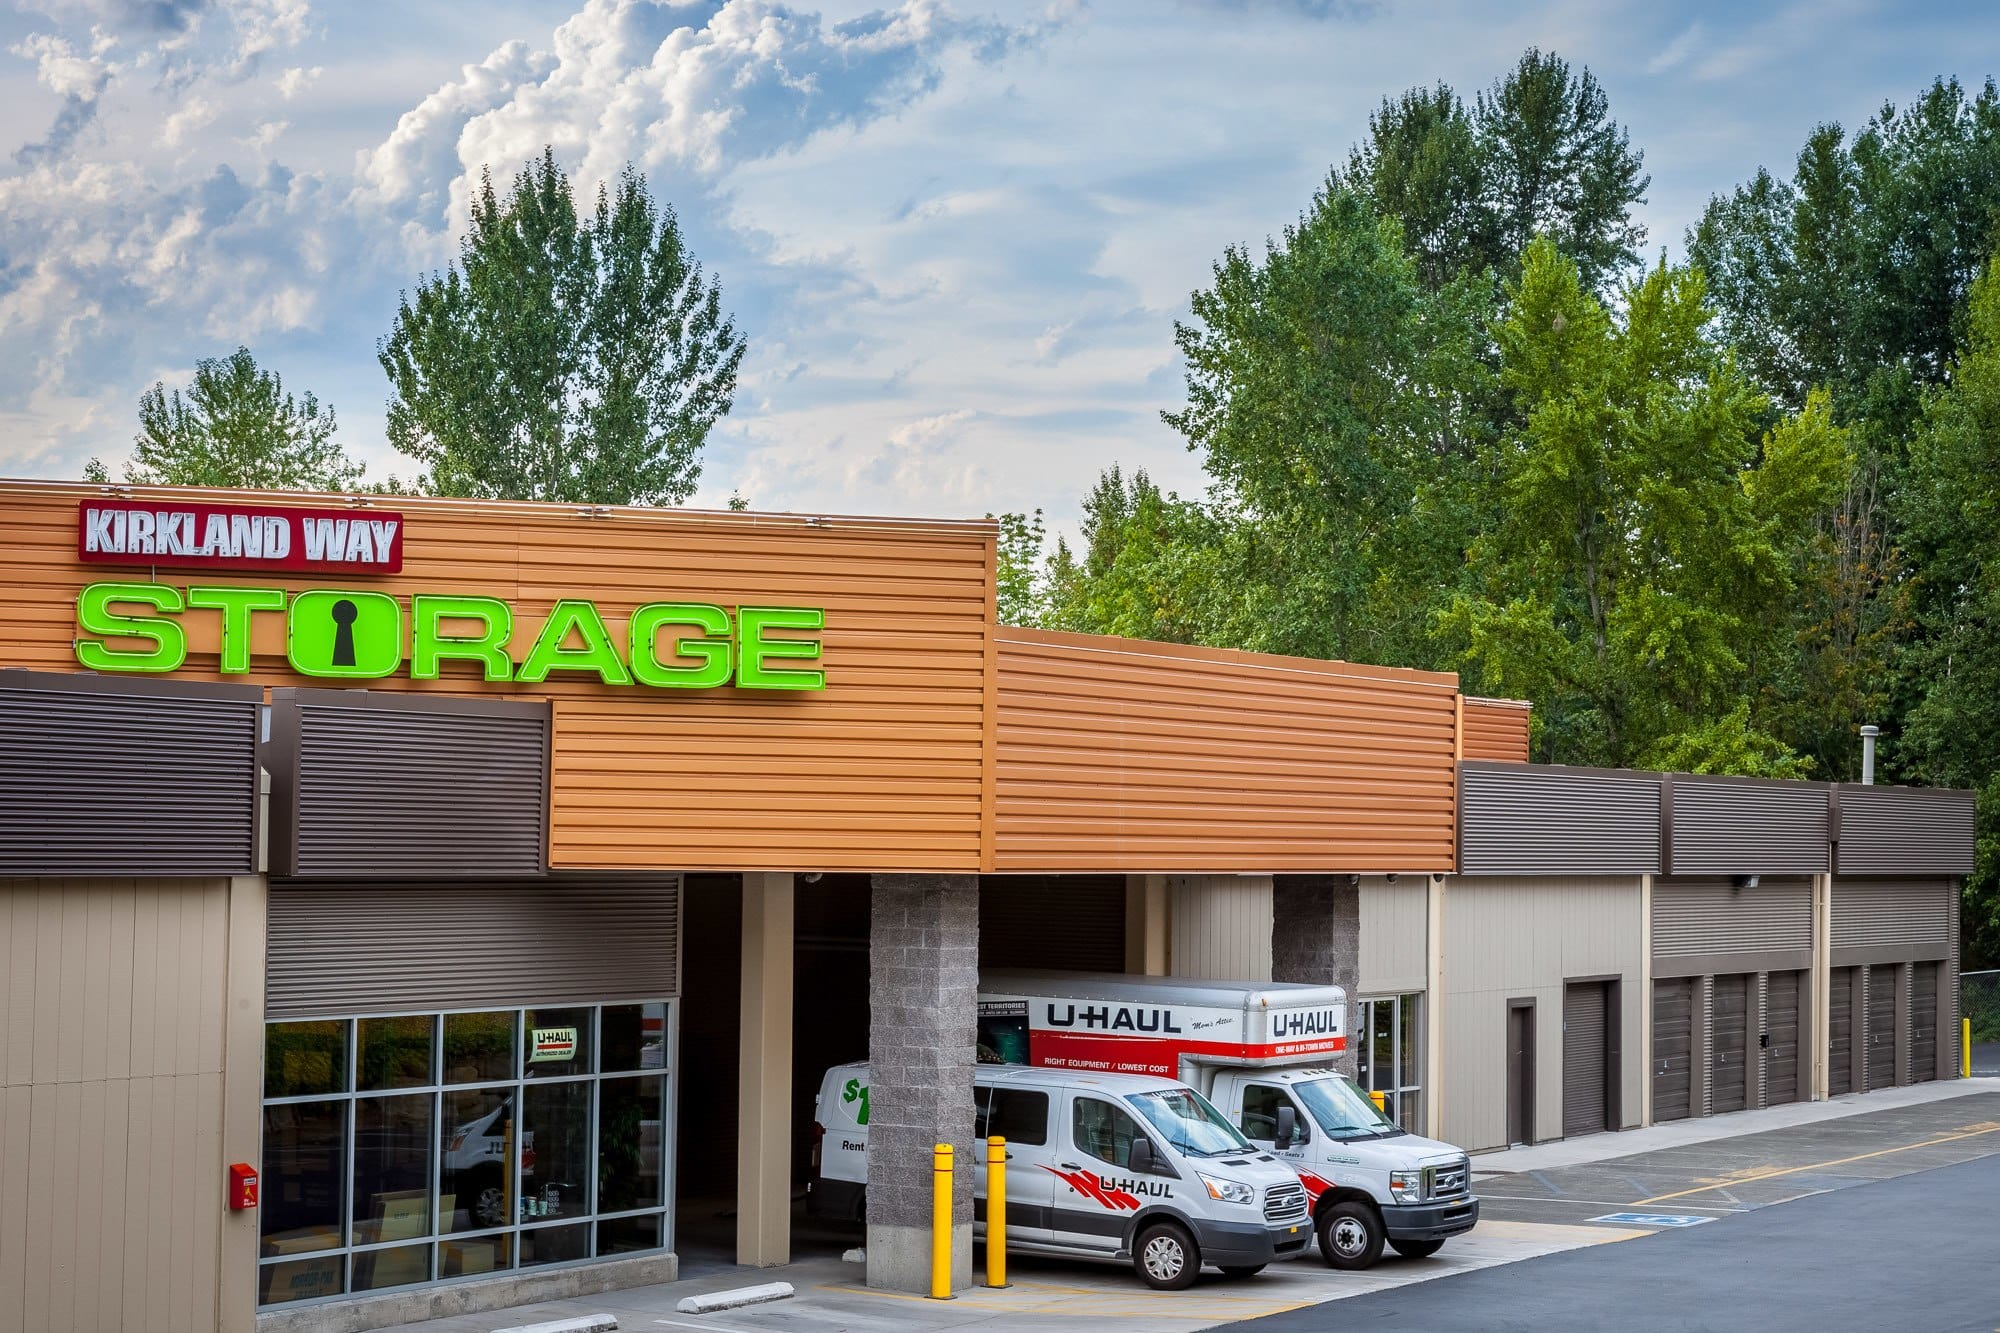 Exterior of self storage facility in Kirkland, Washington